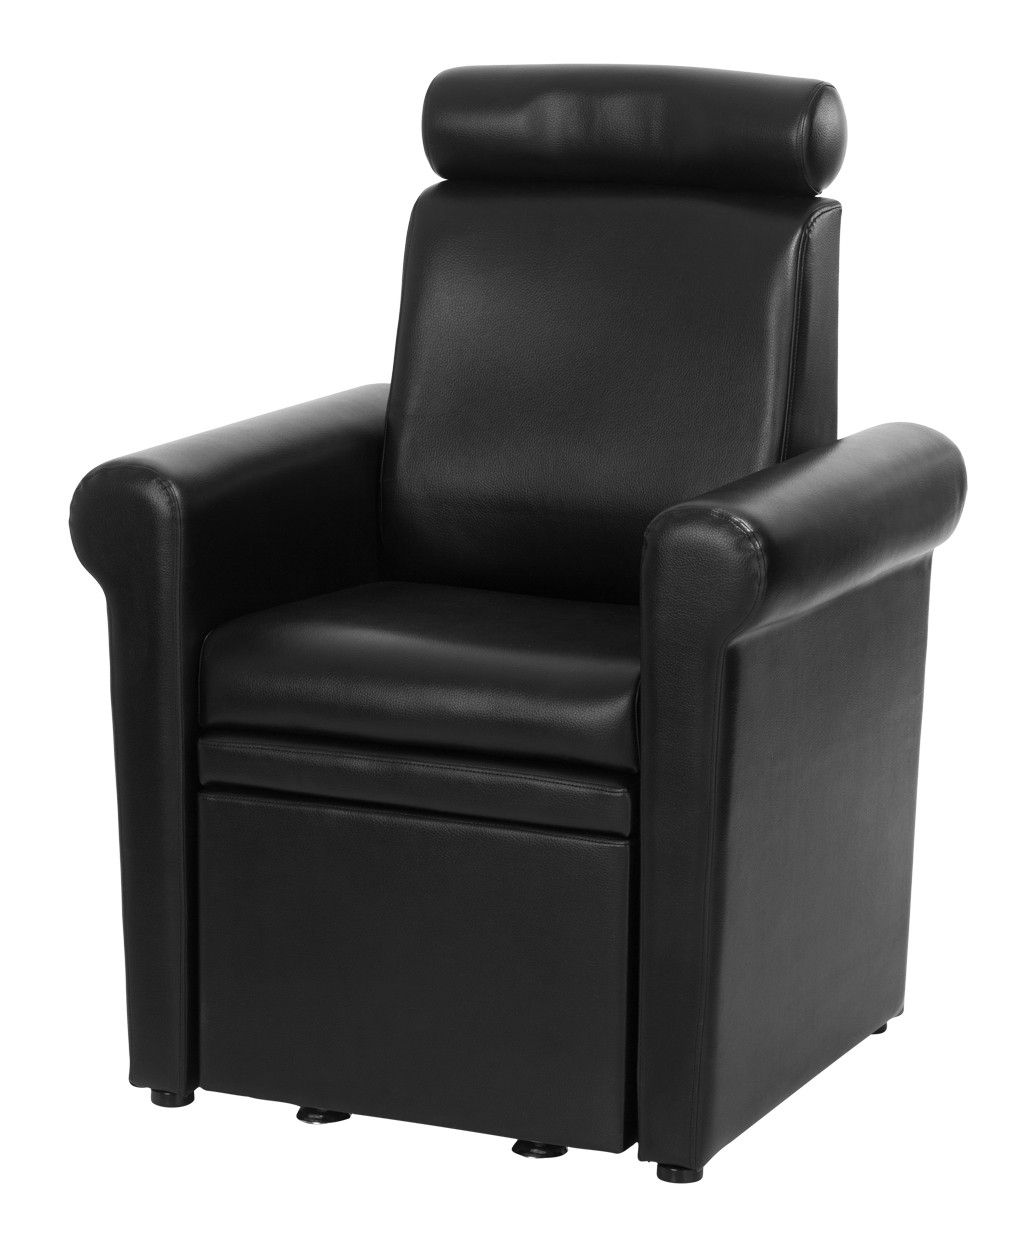 Mona Lisa Pedicure Chair in 2020 Pedicure chairs for